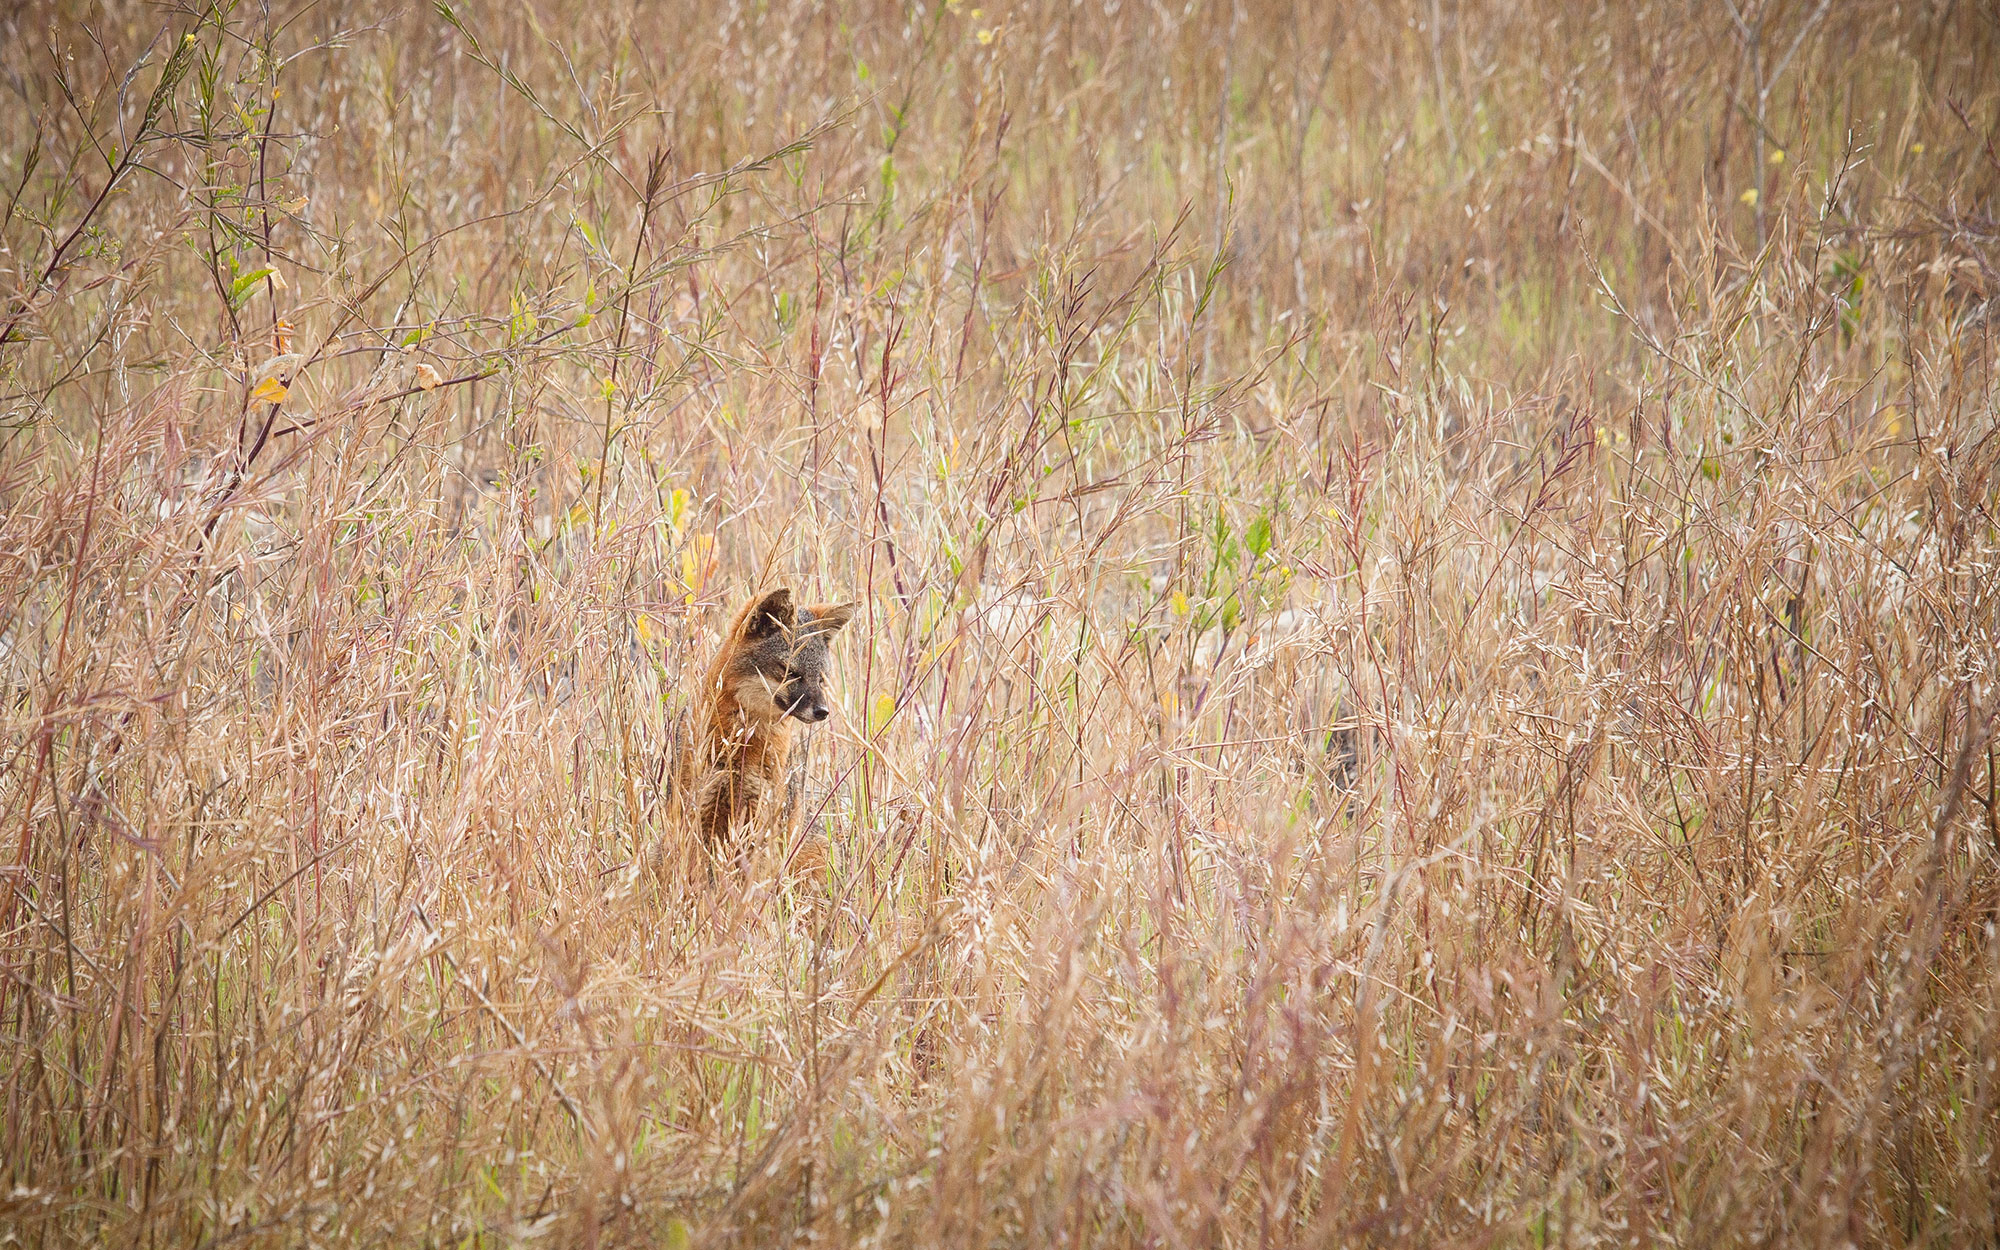 Island Foxes in California's Channel Islands National Park